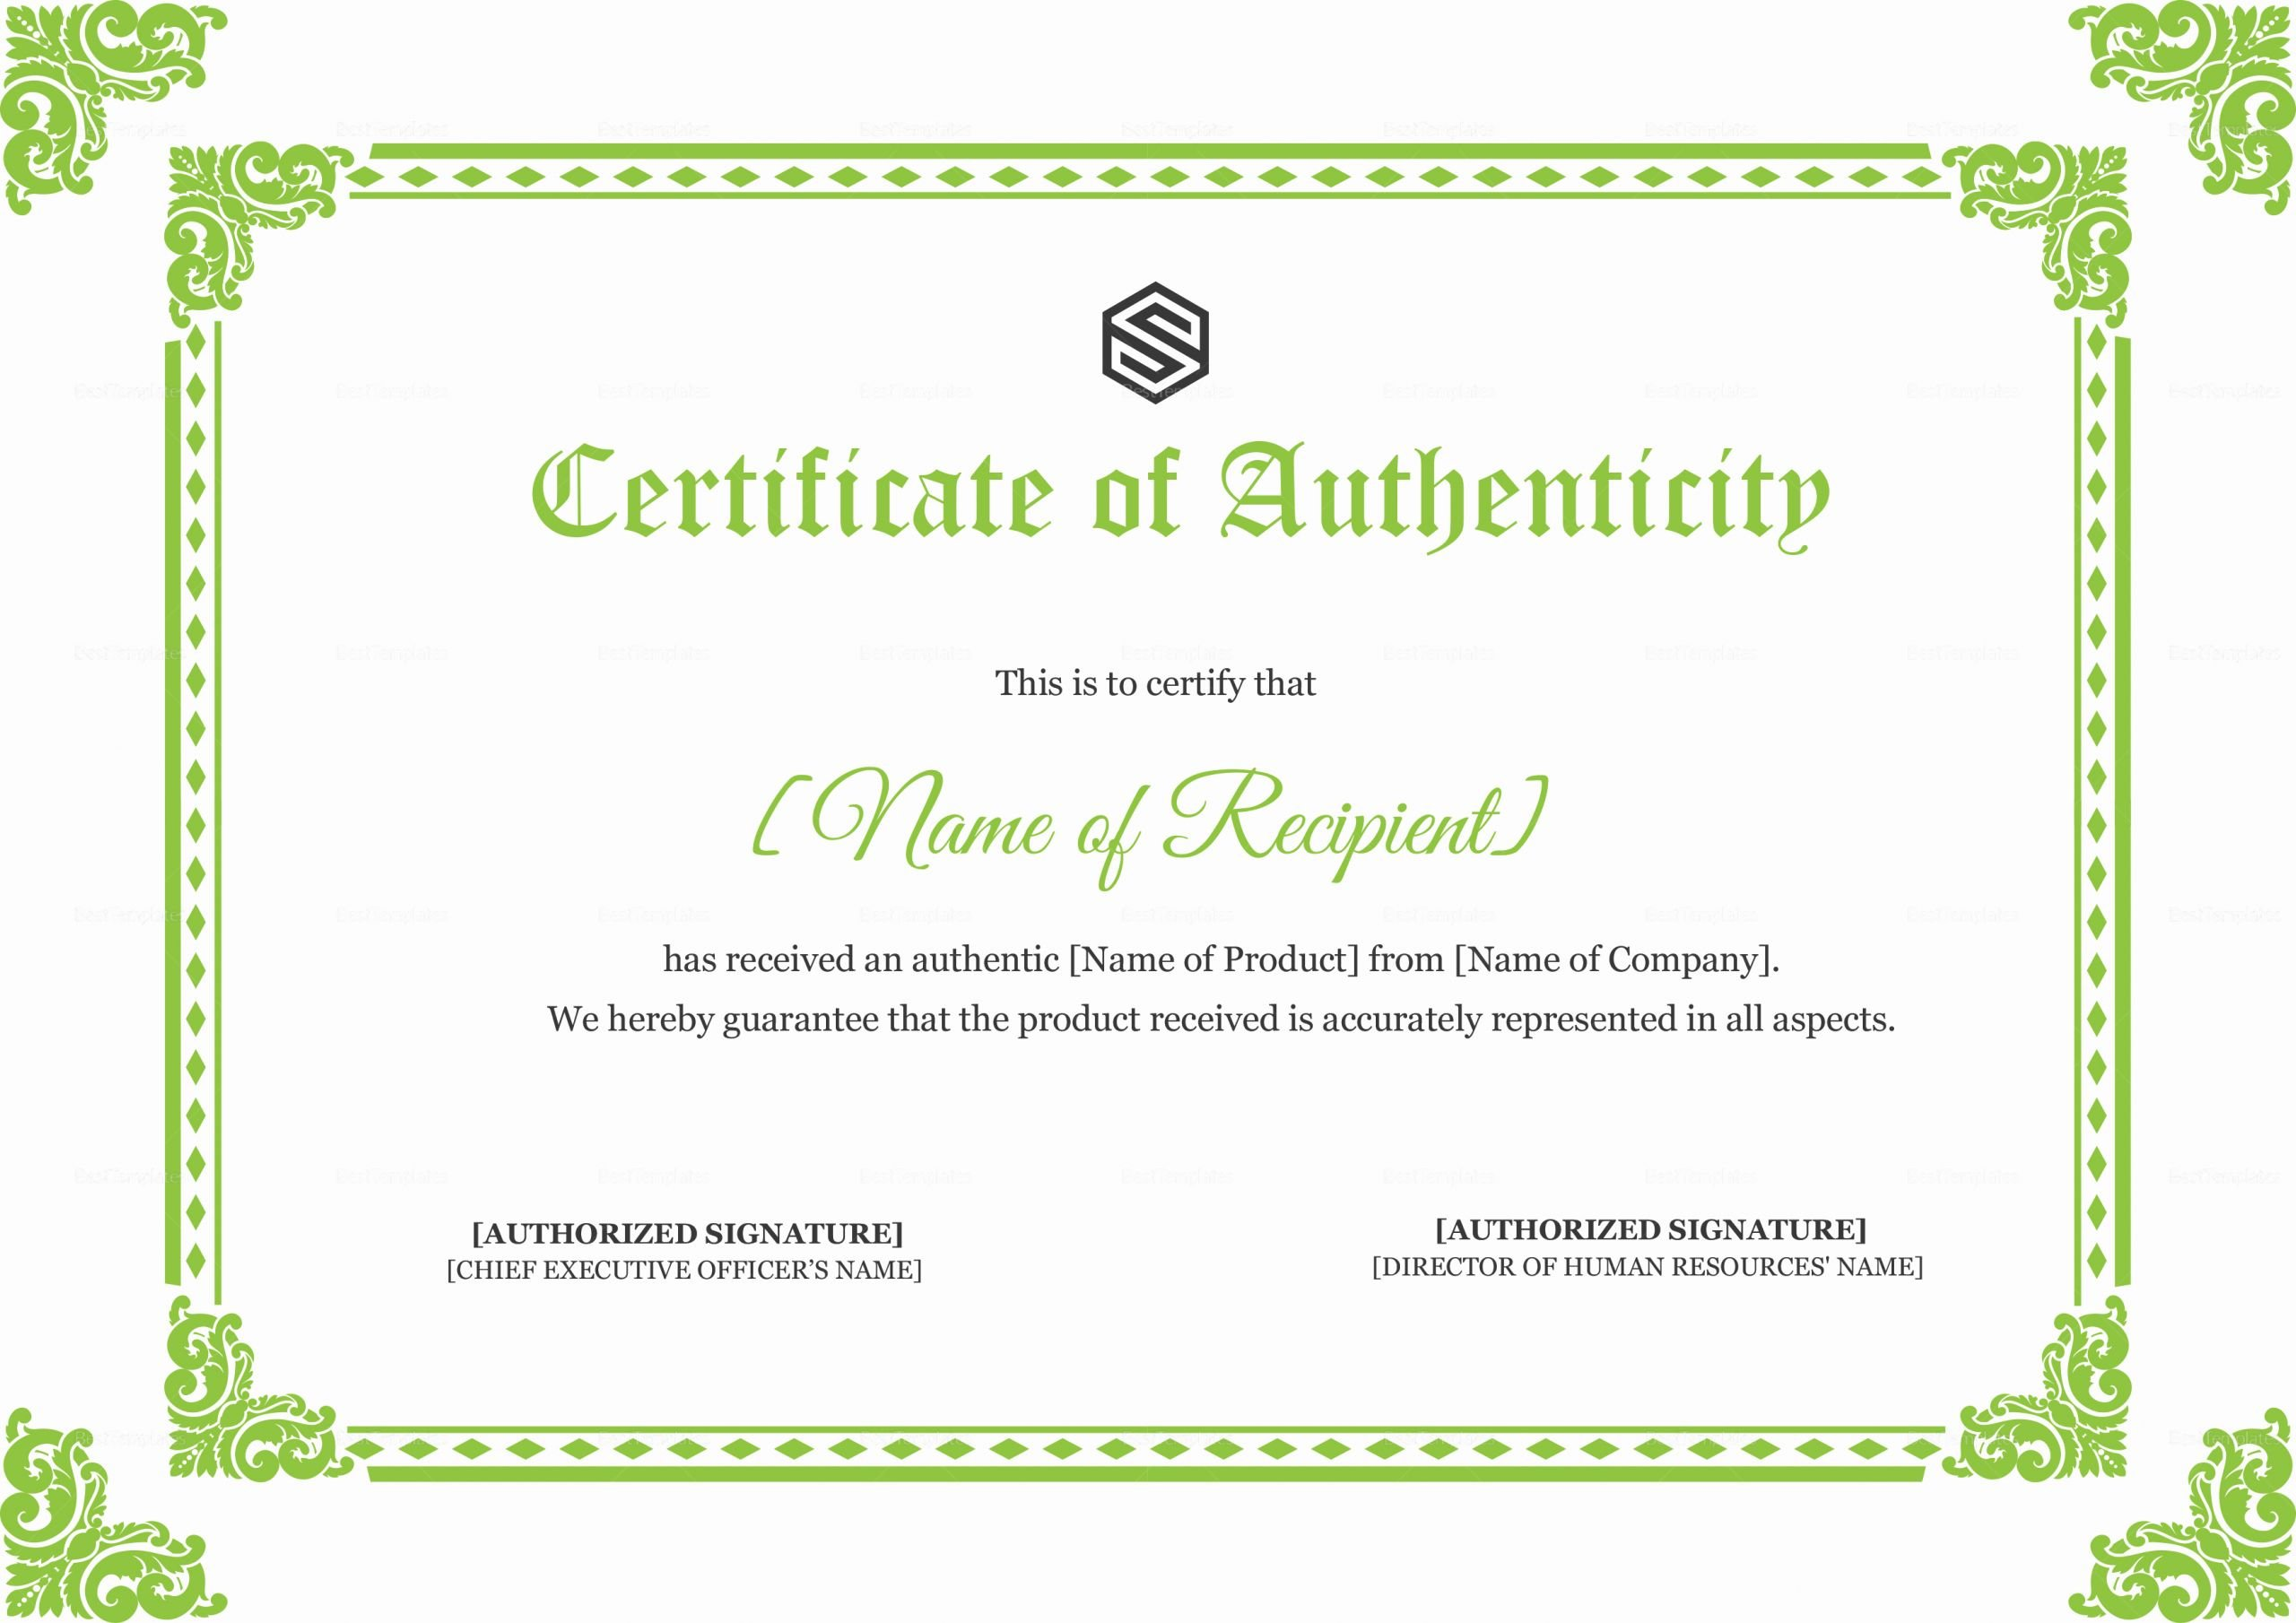 Certificate Of Authenticity Template Microsoft Word Lovely Certificate Of Authenticity Design Template In Psd Word